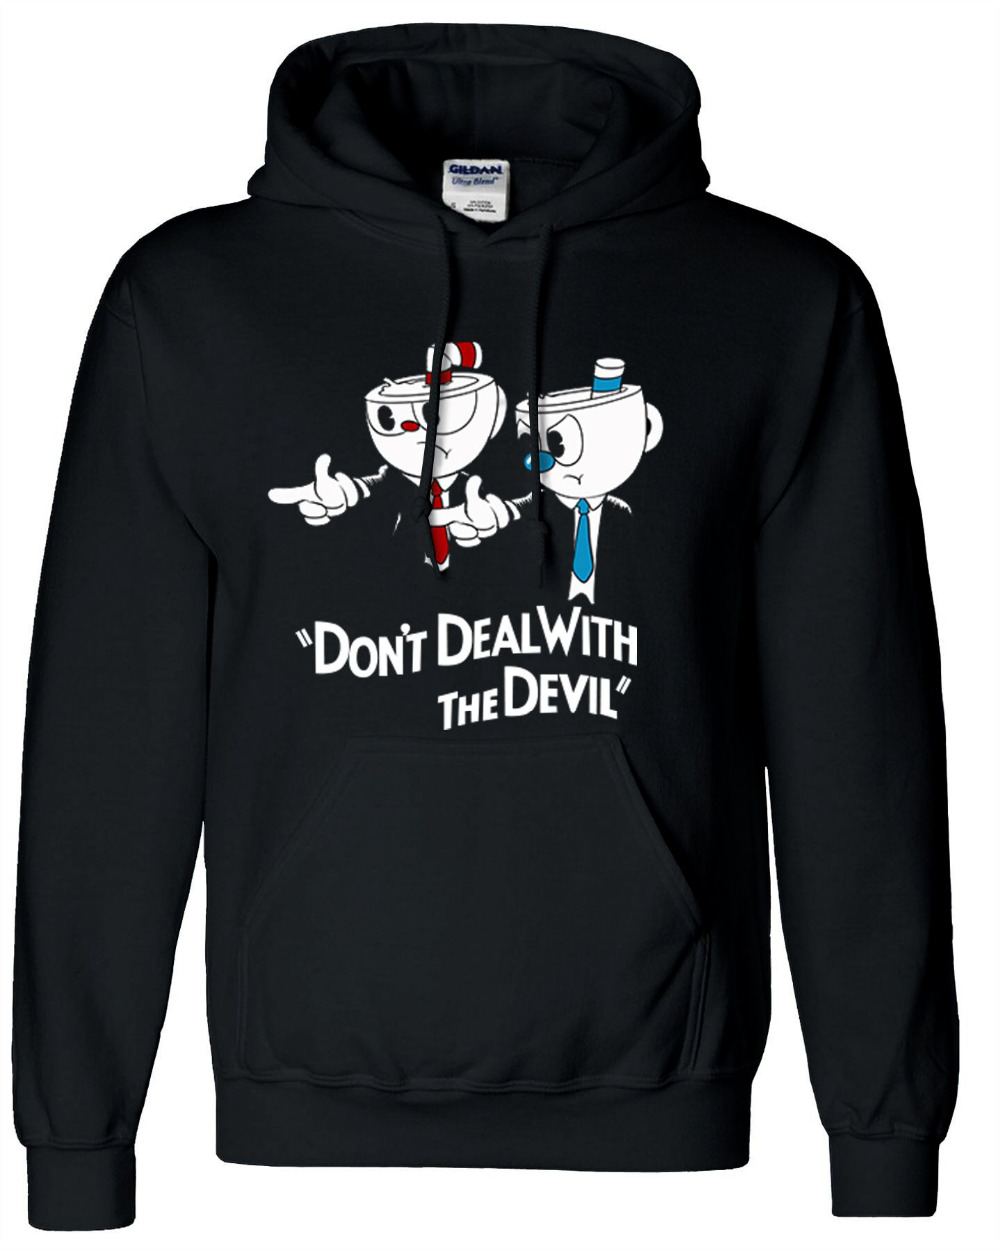 MugmanGame Teacup Jacket Cuphead Coat Cosplay only don't deal with the devil Black Coats Costume Warm Winner Sweatshirt Cosplay